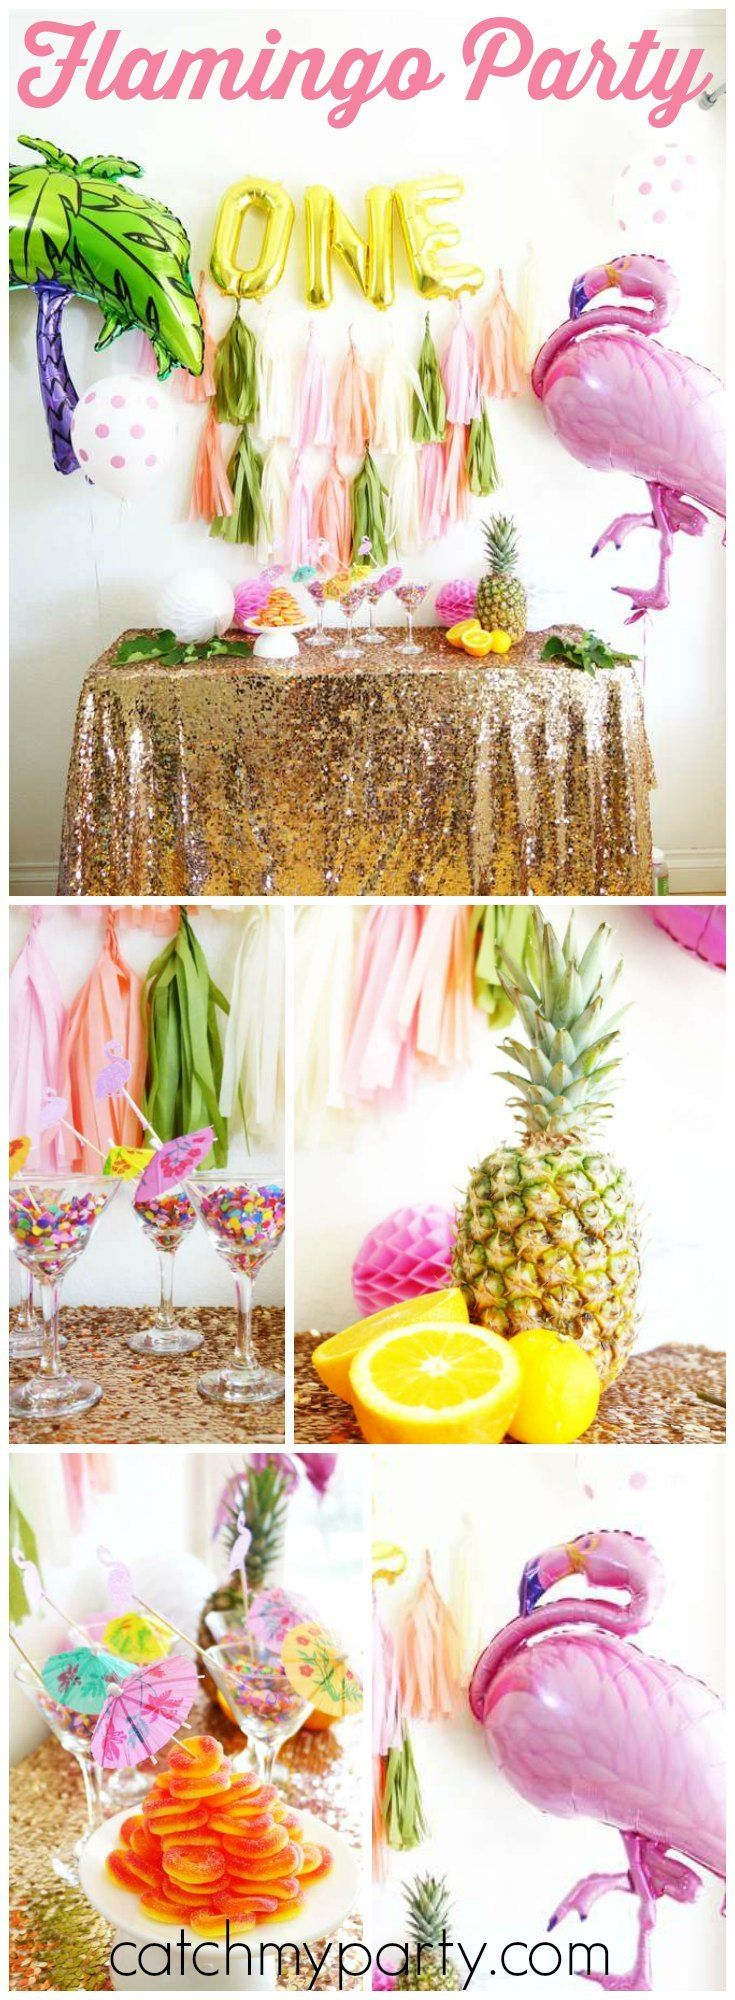 How cool is this tropical birthday party with flamingos and palm trees! See more party ideas at Catchmyparty.com!